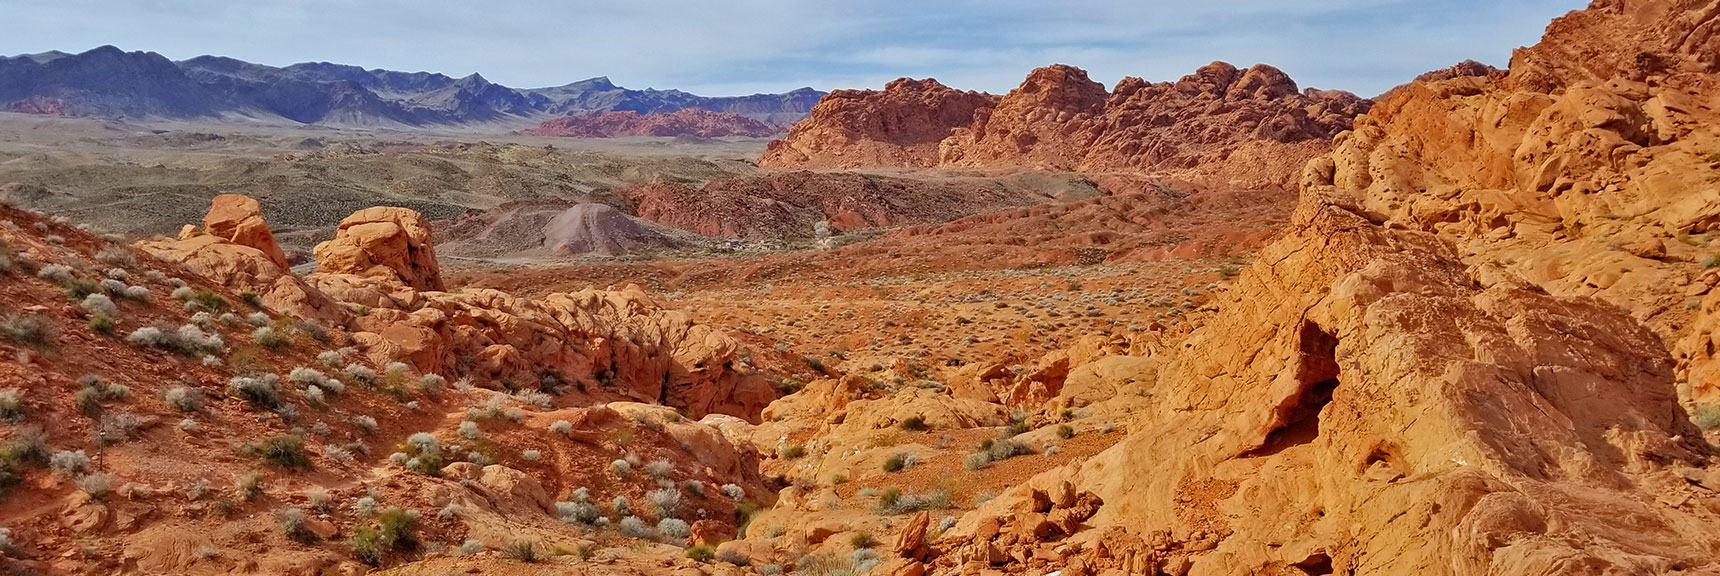 View West of Elephant Rock Loop in Valley of Fire State Park, Nevada